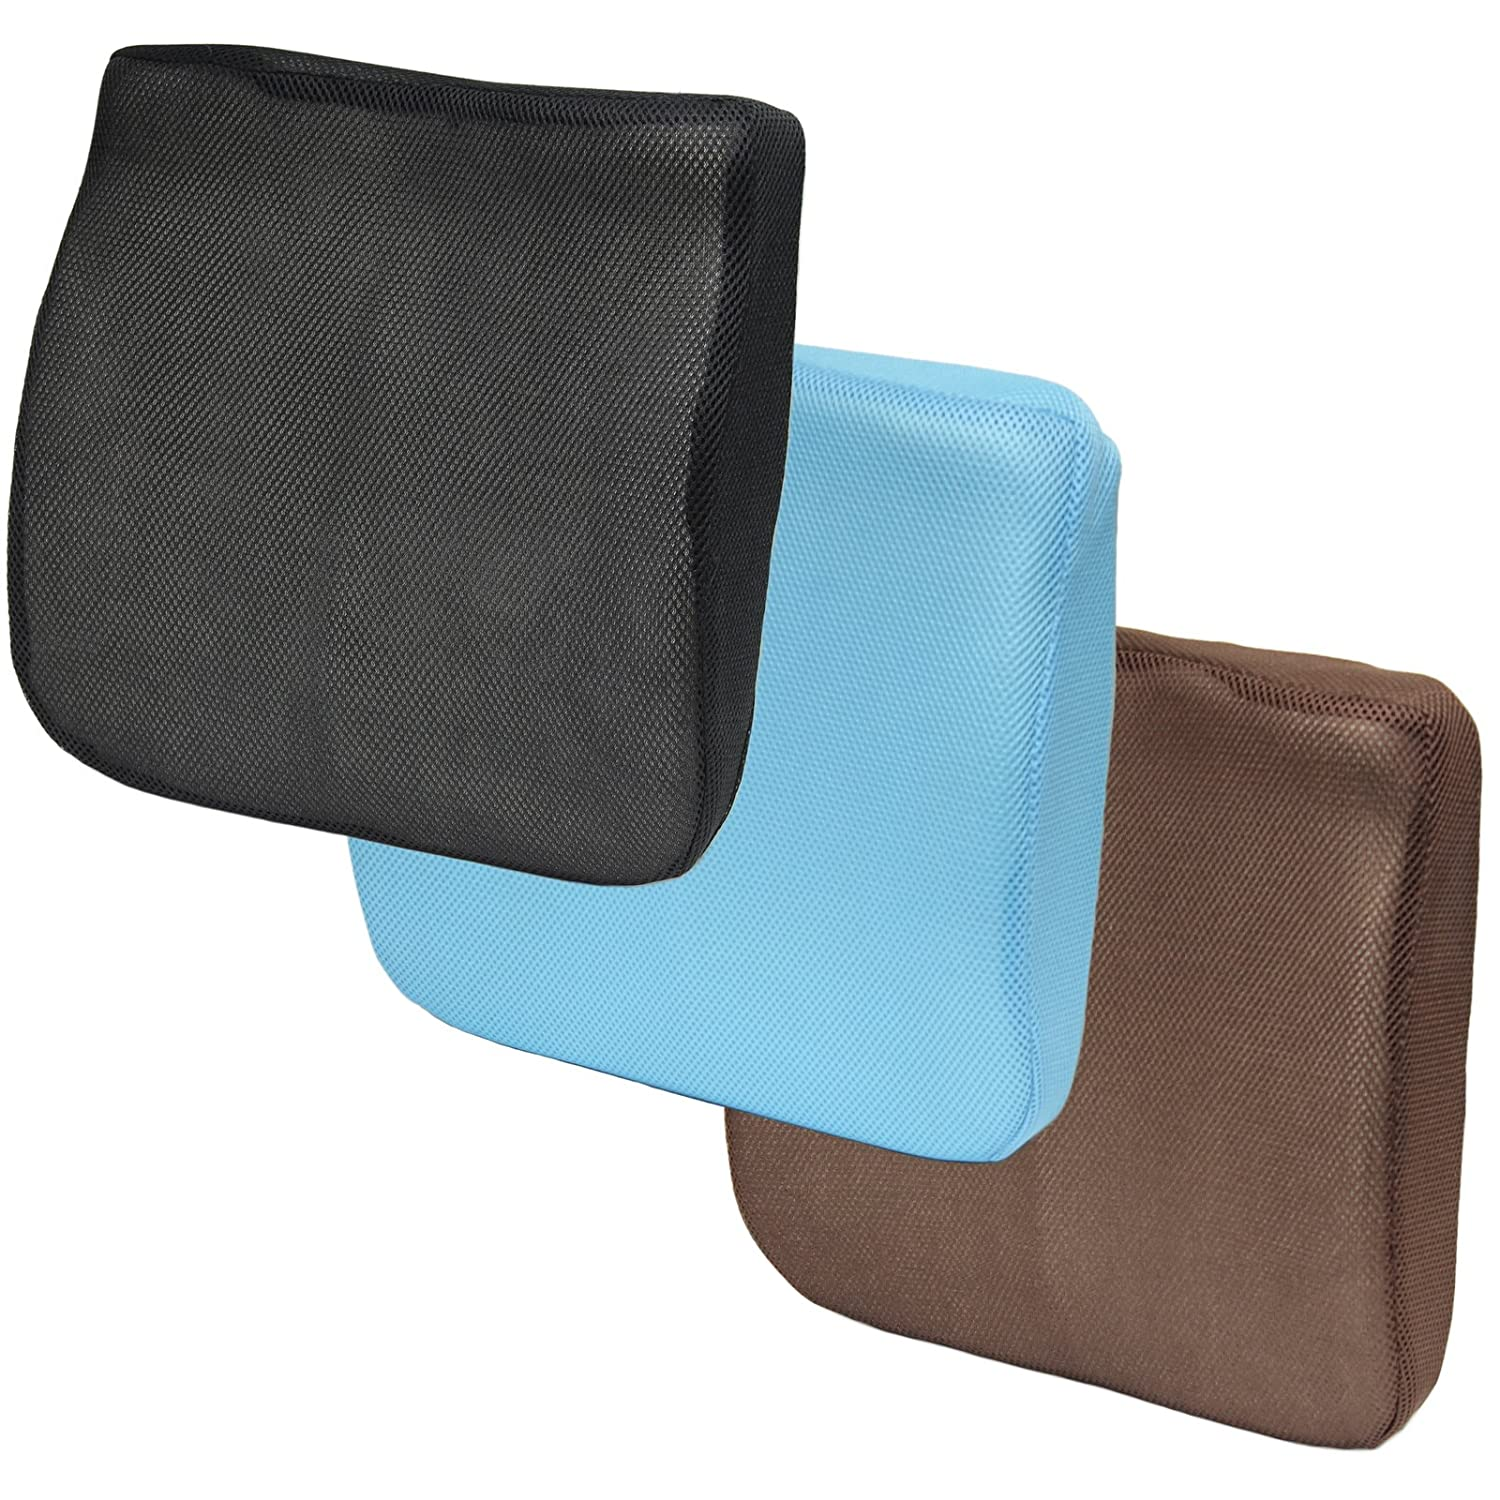 Hartleys 2 in 1 Memory Foam Seat Cushion & Lumbar Support - Black, Blue or Brown